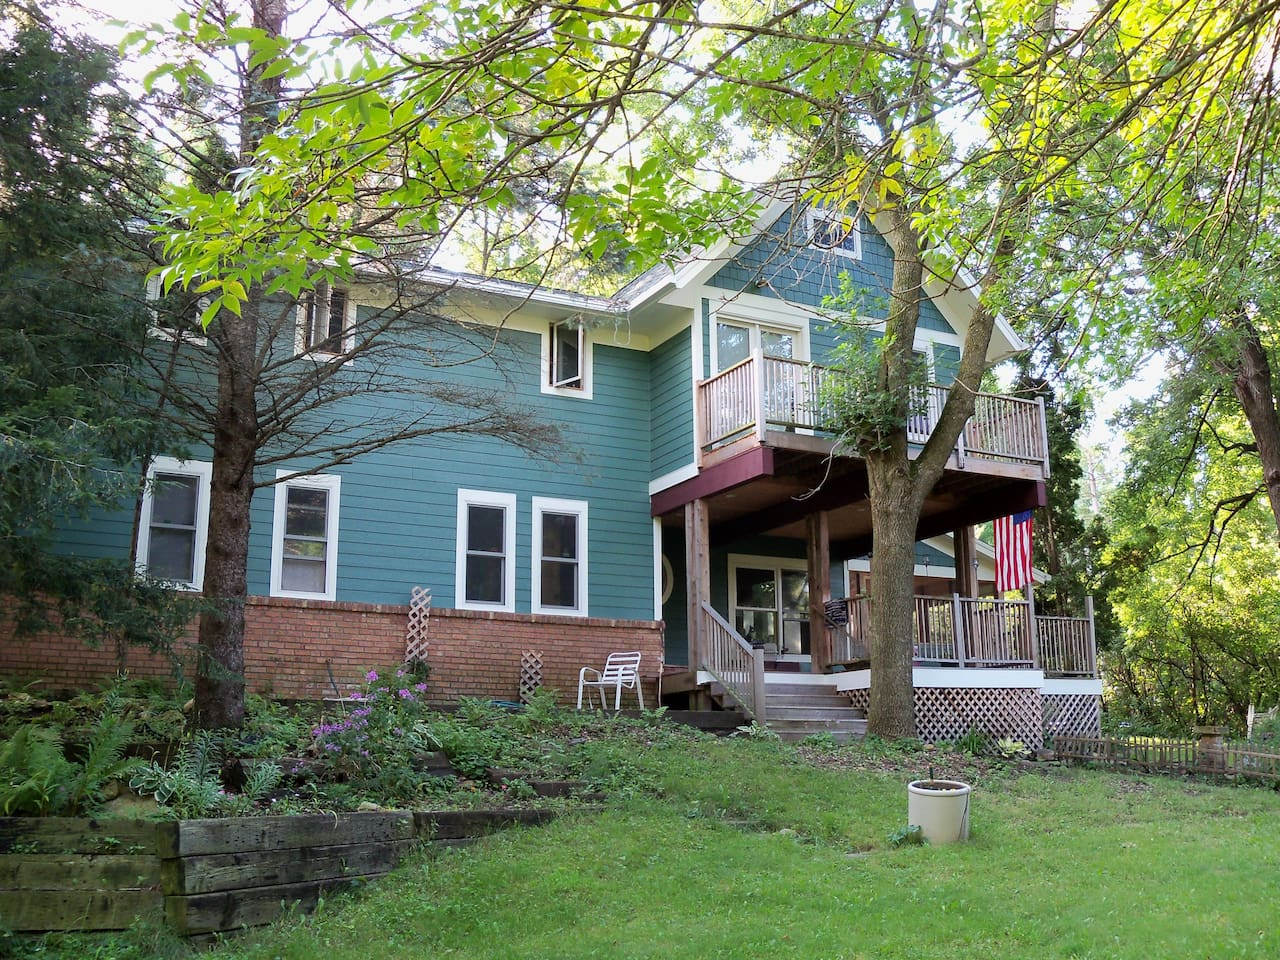 Single room in home on wooded lot near recreational areas and wine trails.